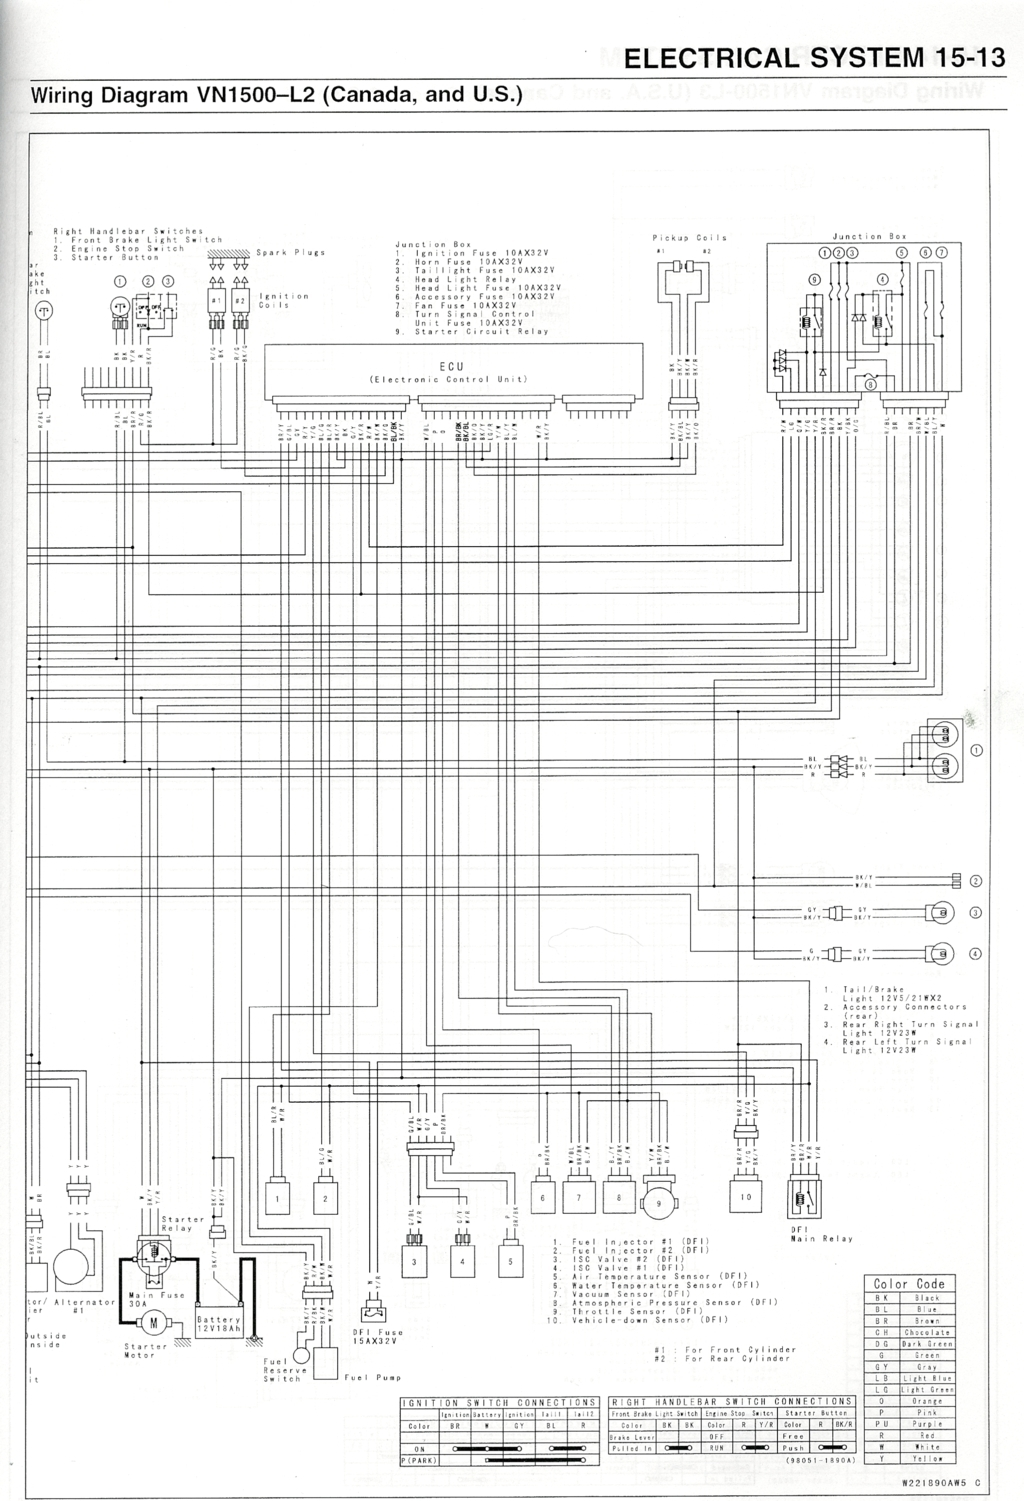 nomad_wiring_diagram_p2 vulcan wiring diagrams gadget's fixit page Kawasaki Vulcan 1500 Wiring Diagram at bakdesigns.co